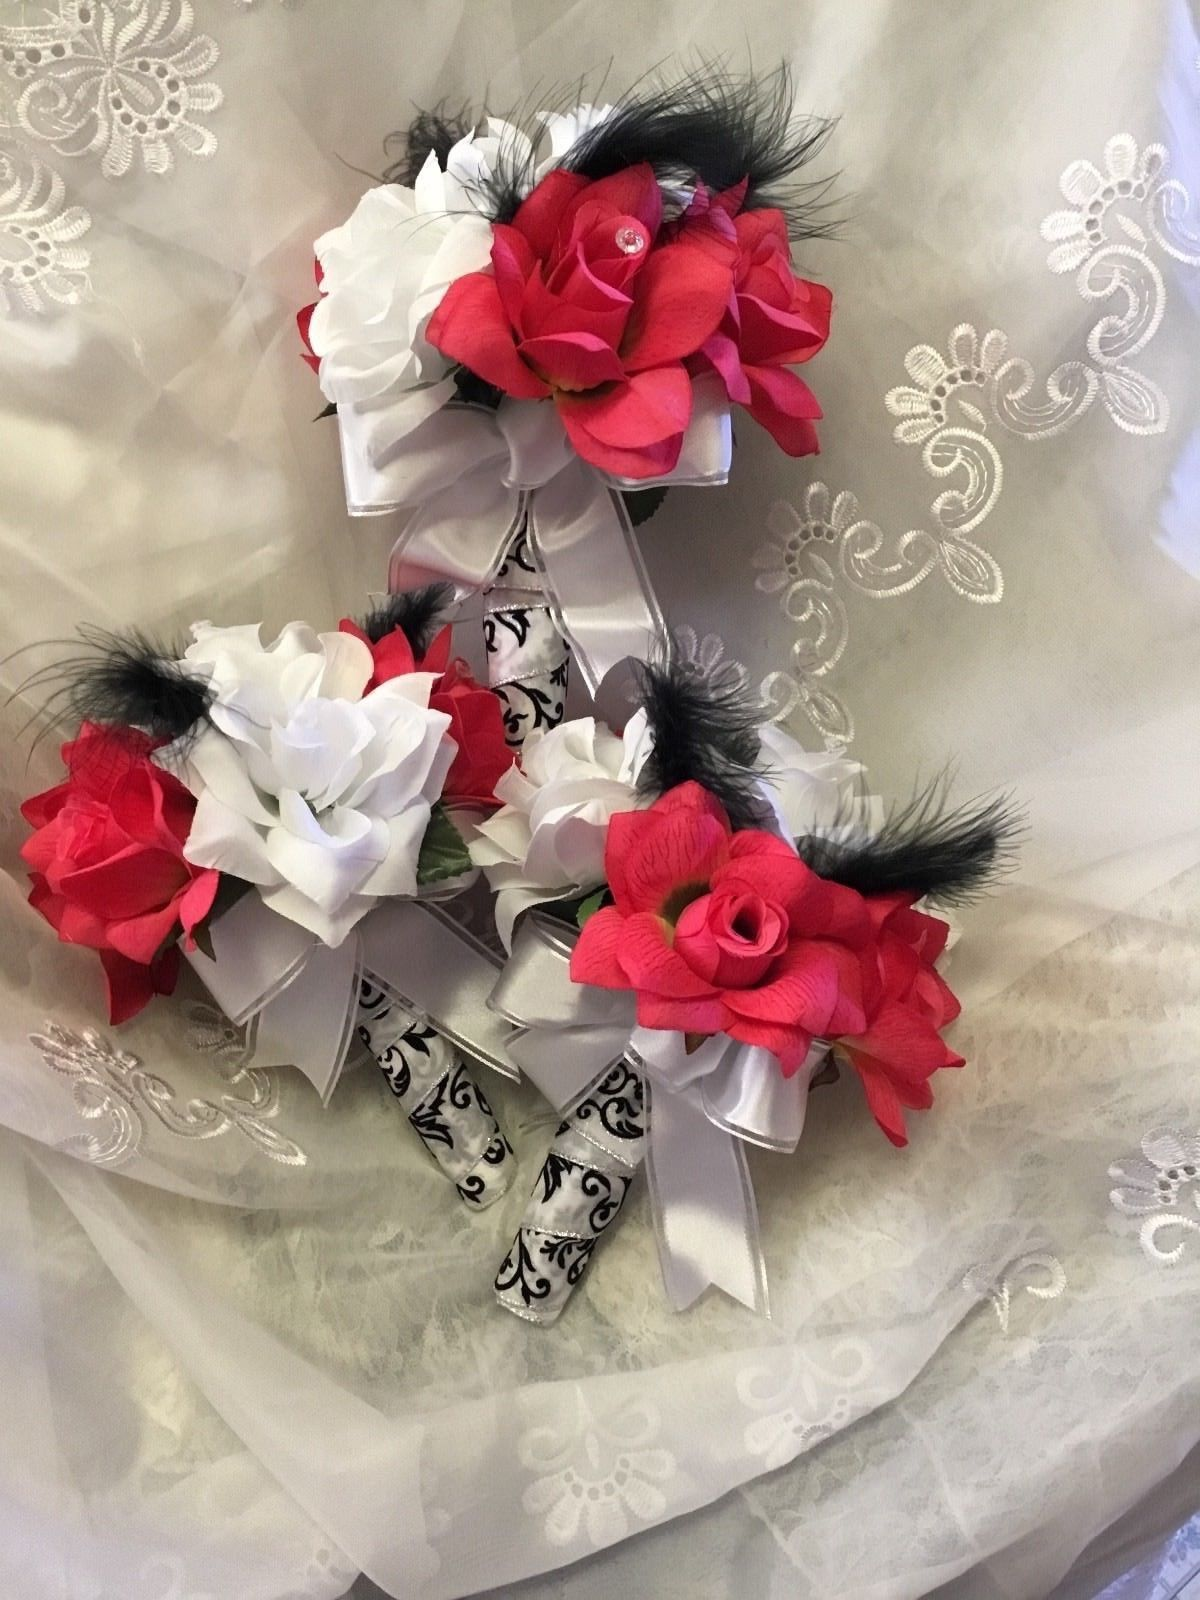 Make Offer 10pc Wedding Flowers Silk Bridal And 11 Similar Items